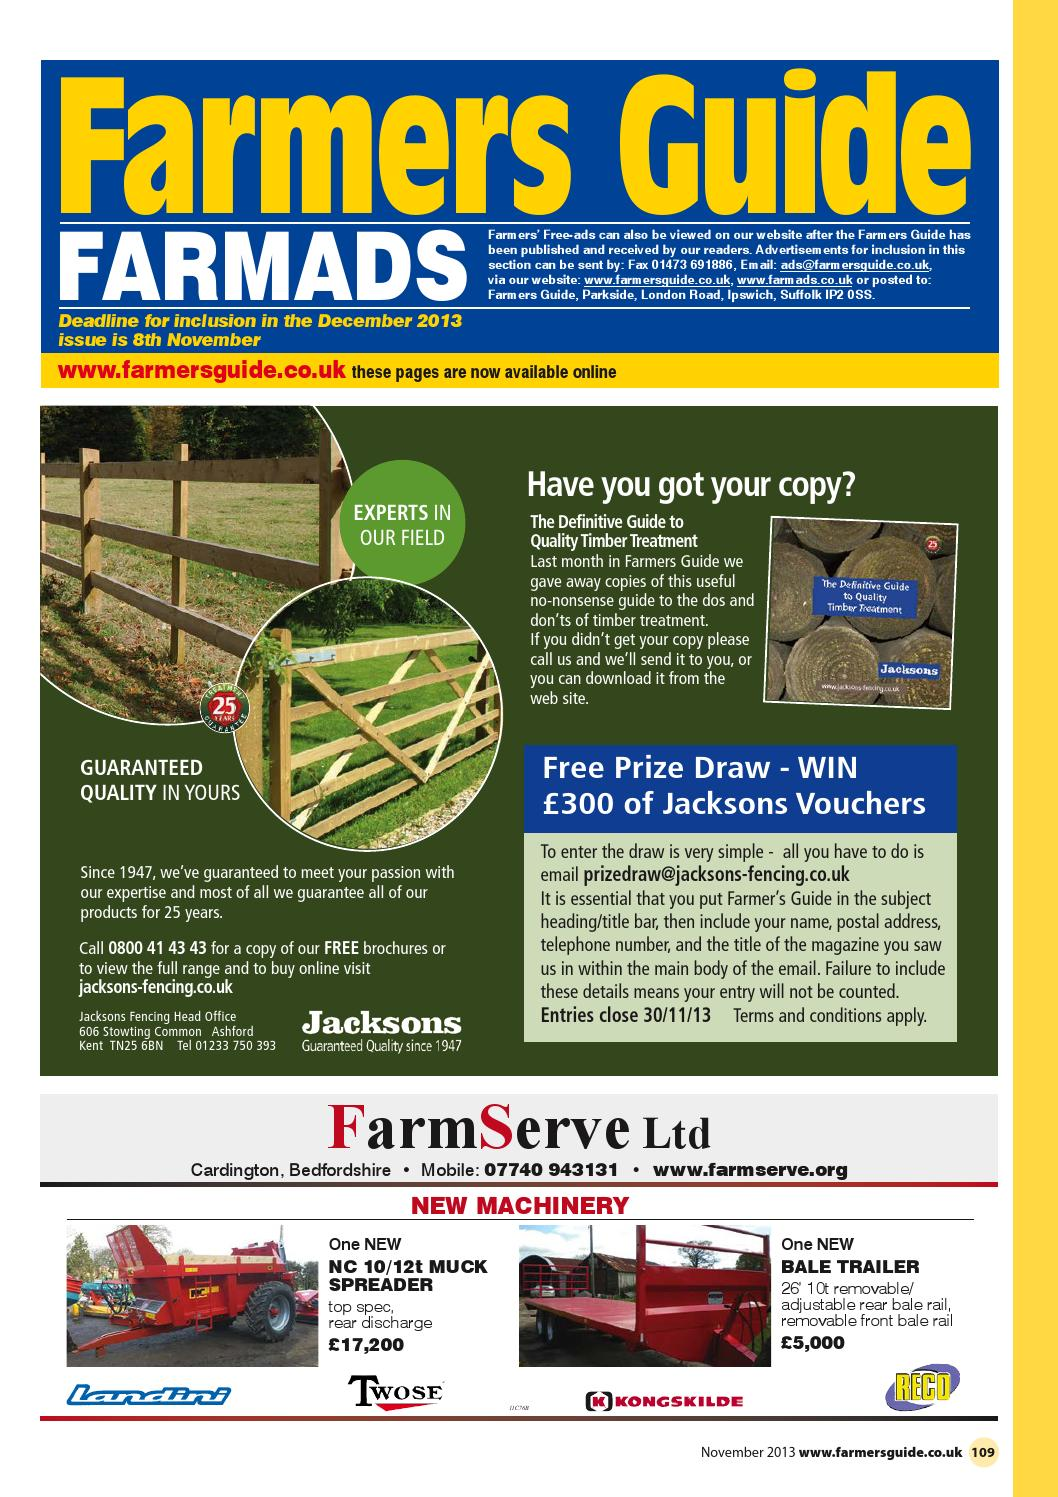 Farmers Guide classified section - November 2013 by Farmers Guide - issuu